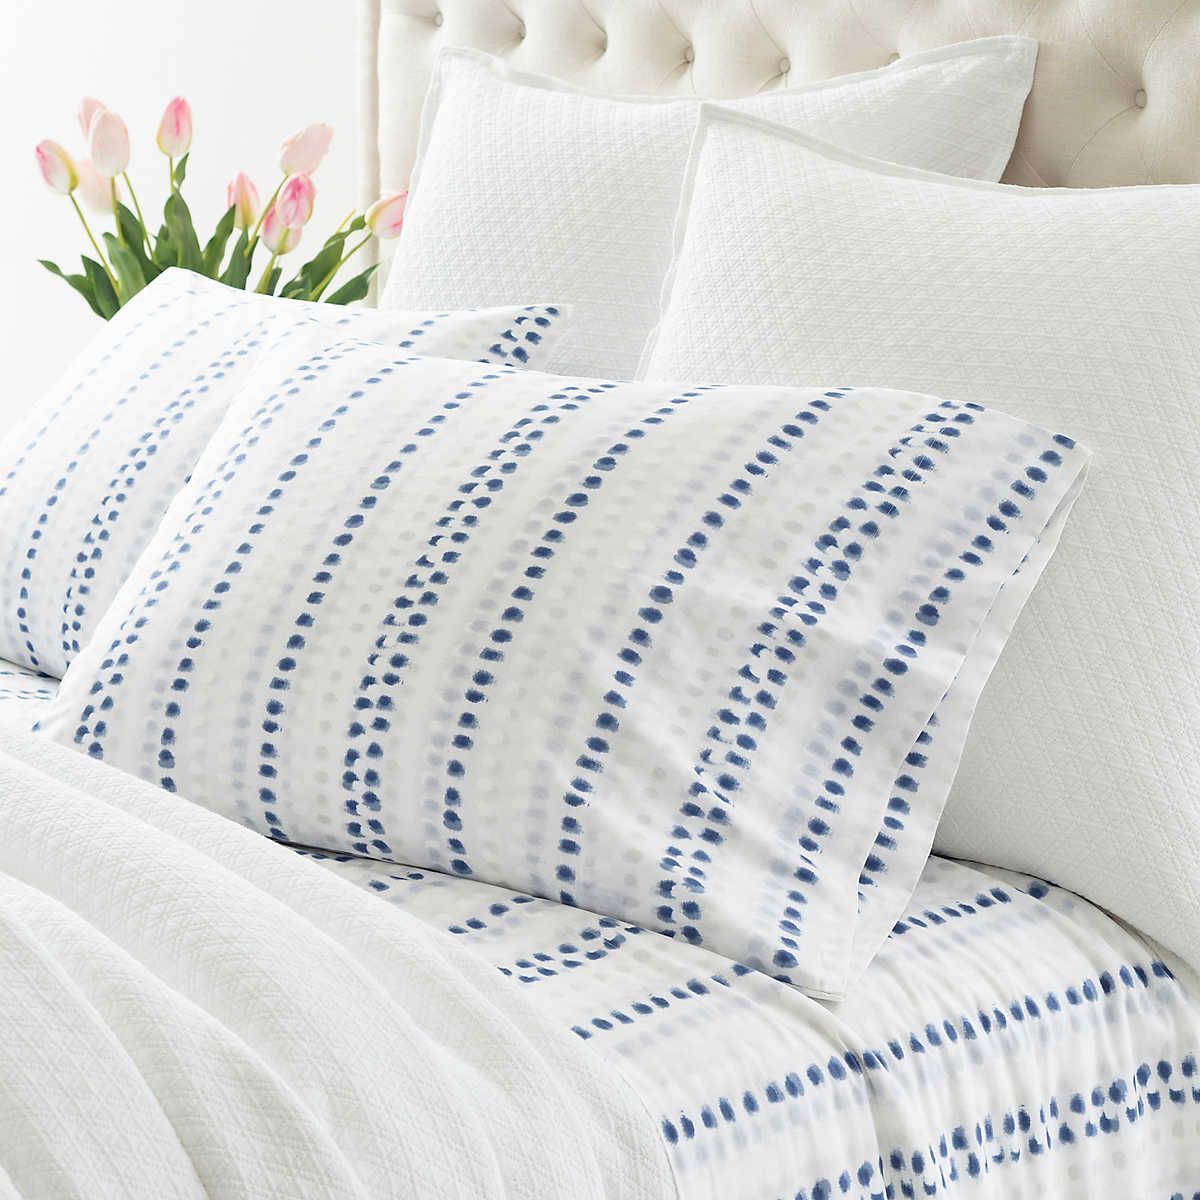 Ink Dots Pillowcases Pine Cone Hill Blue Pattern Sheets